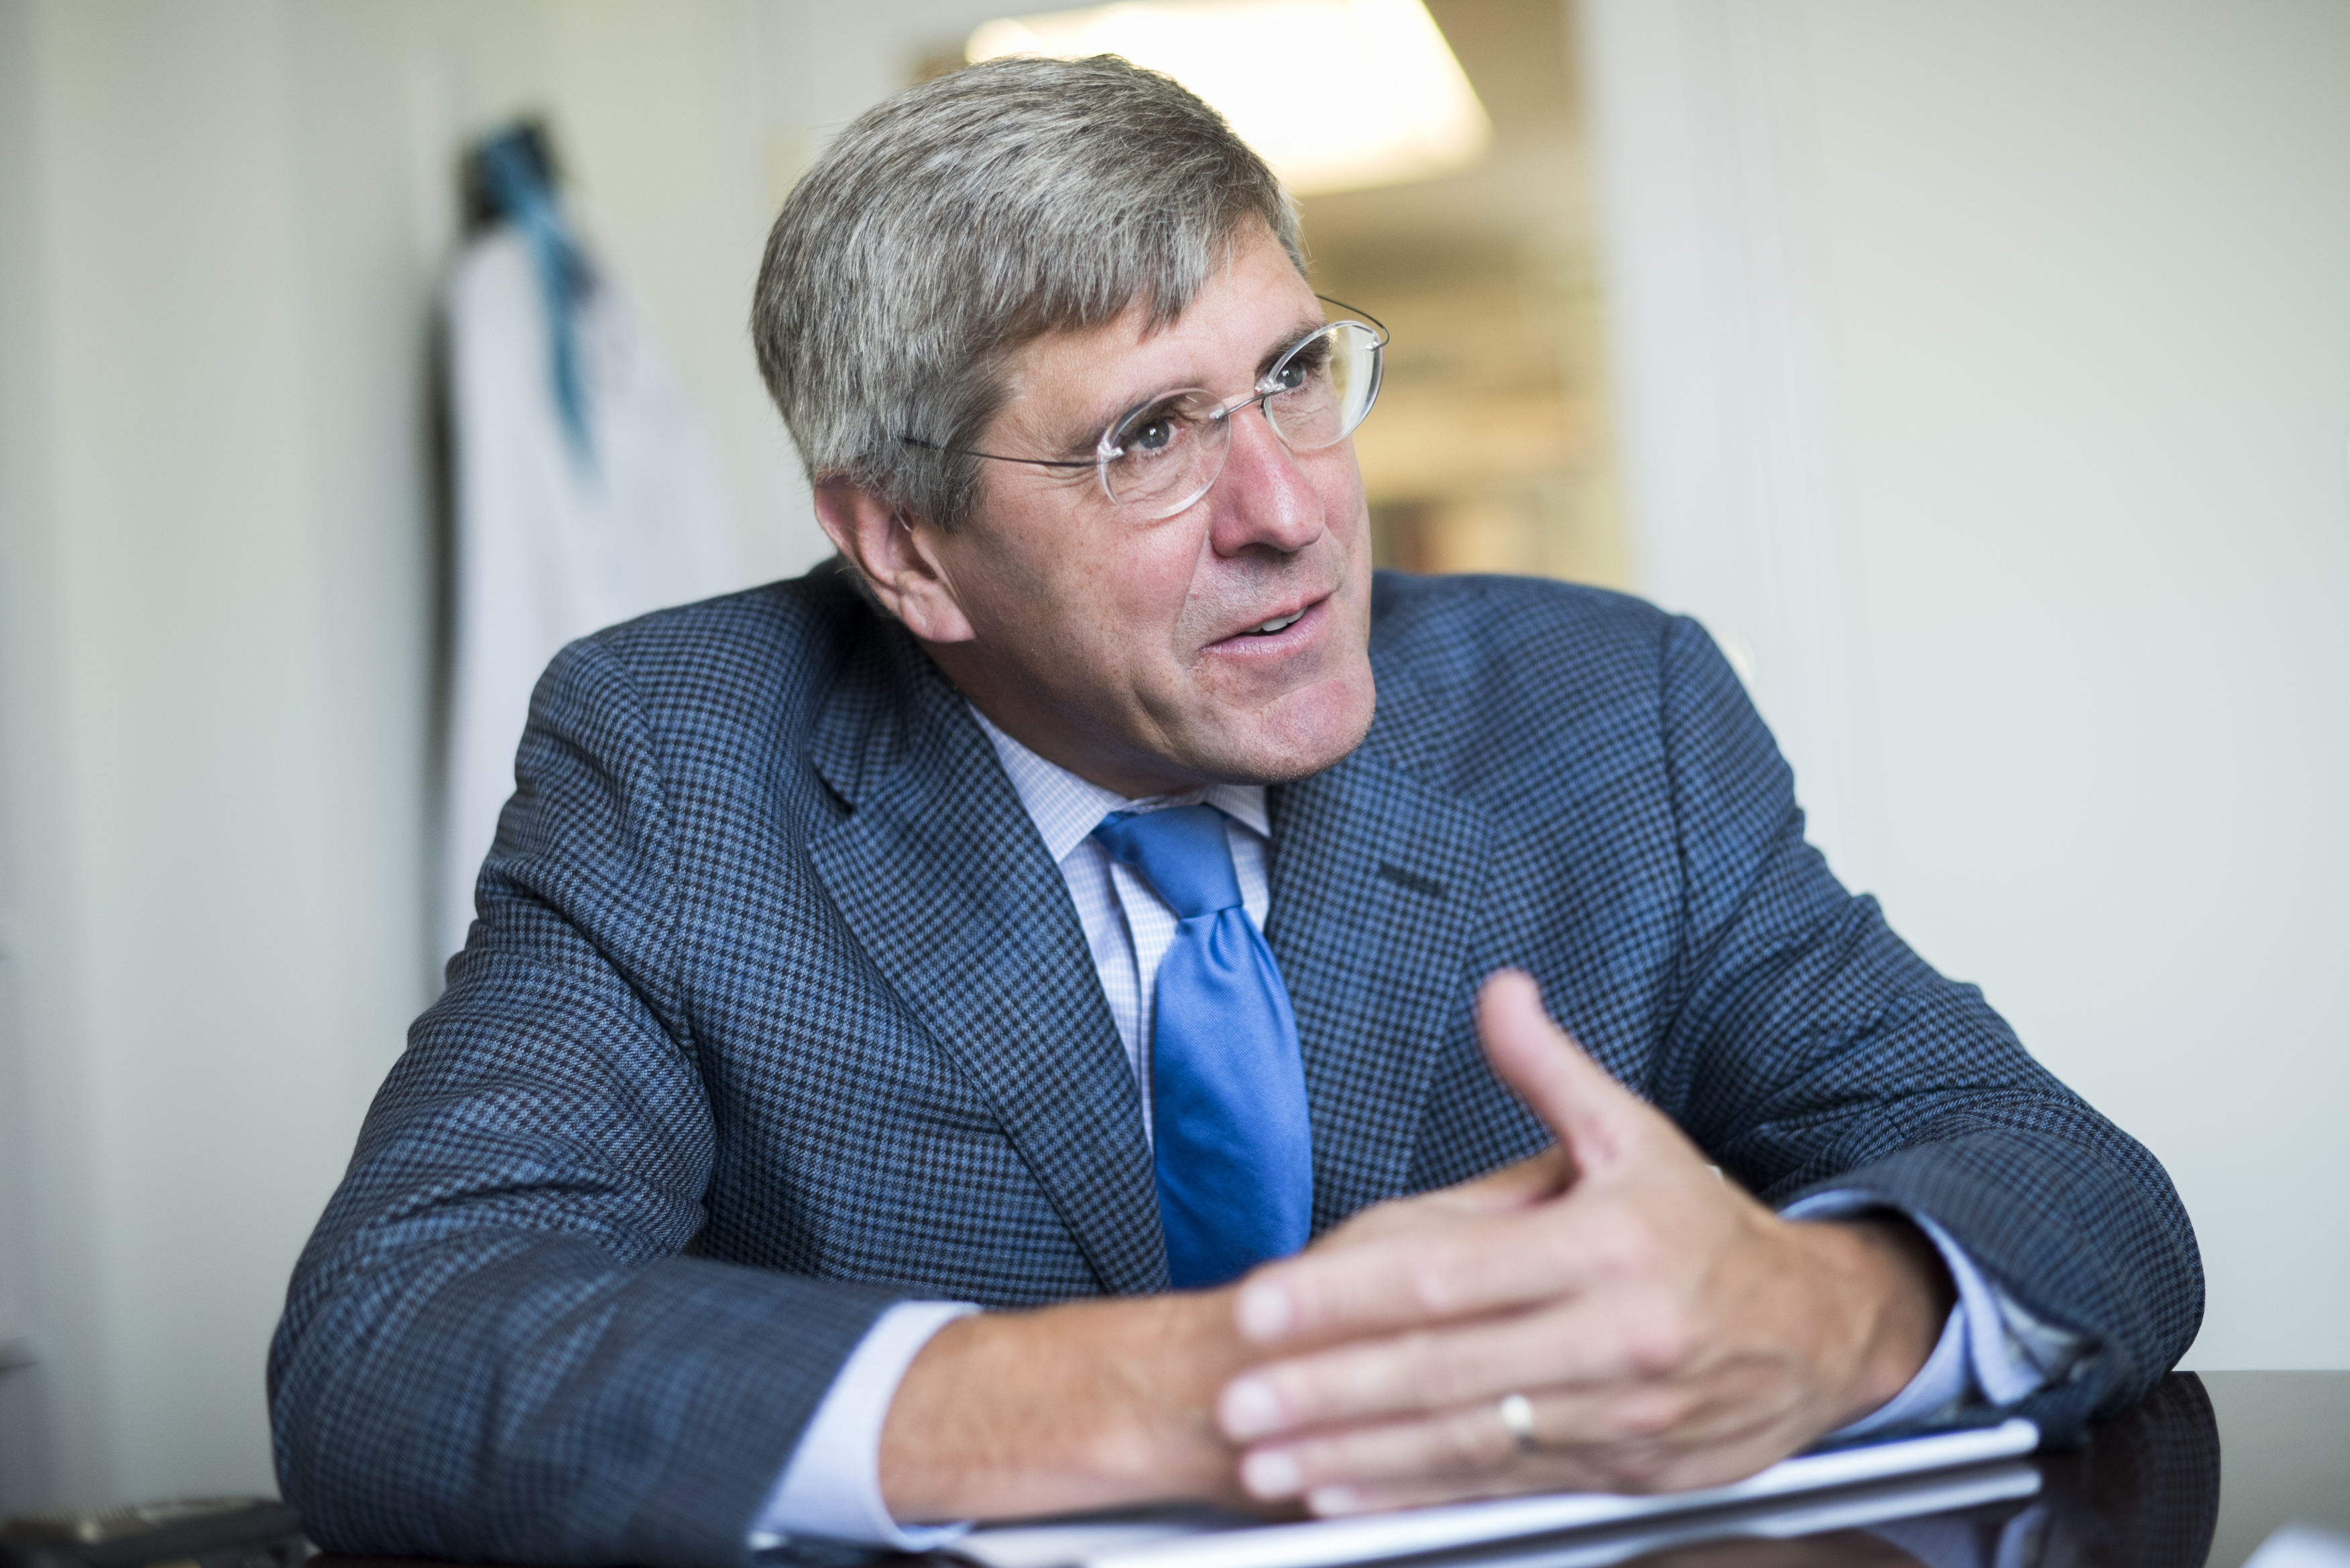 Stephen Moore of The Heritage Foundation is interviewed by CQ in his Washington office, Aug. 31, 2016.